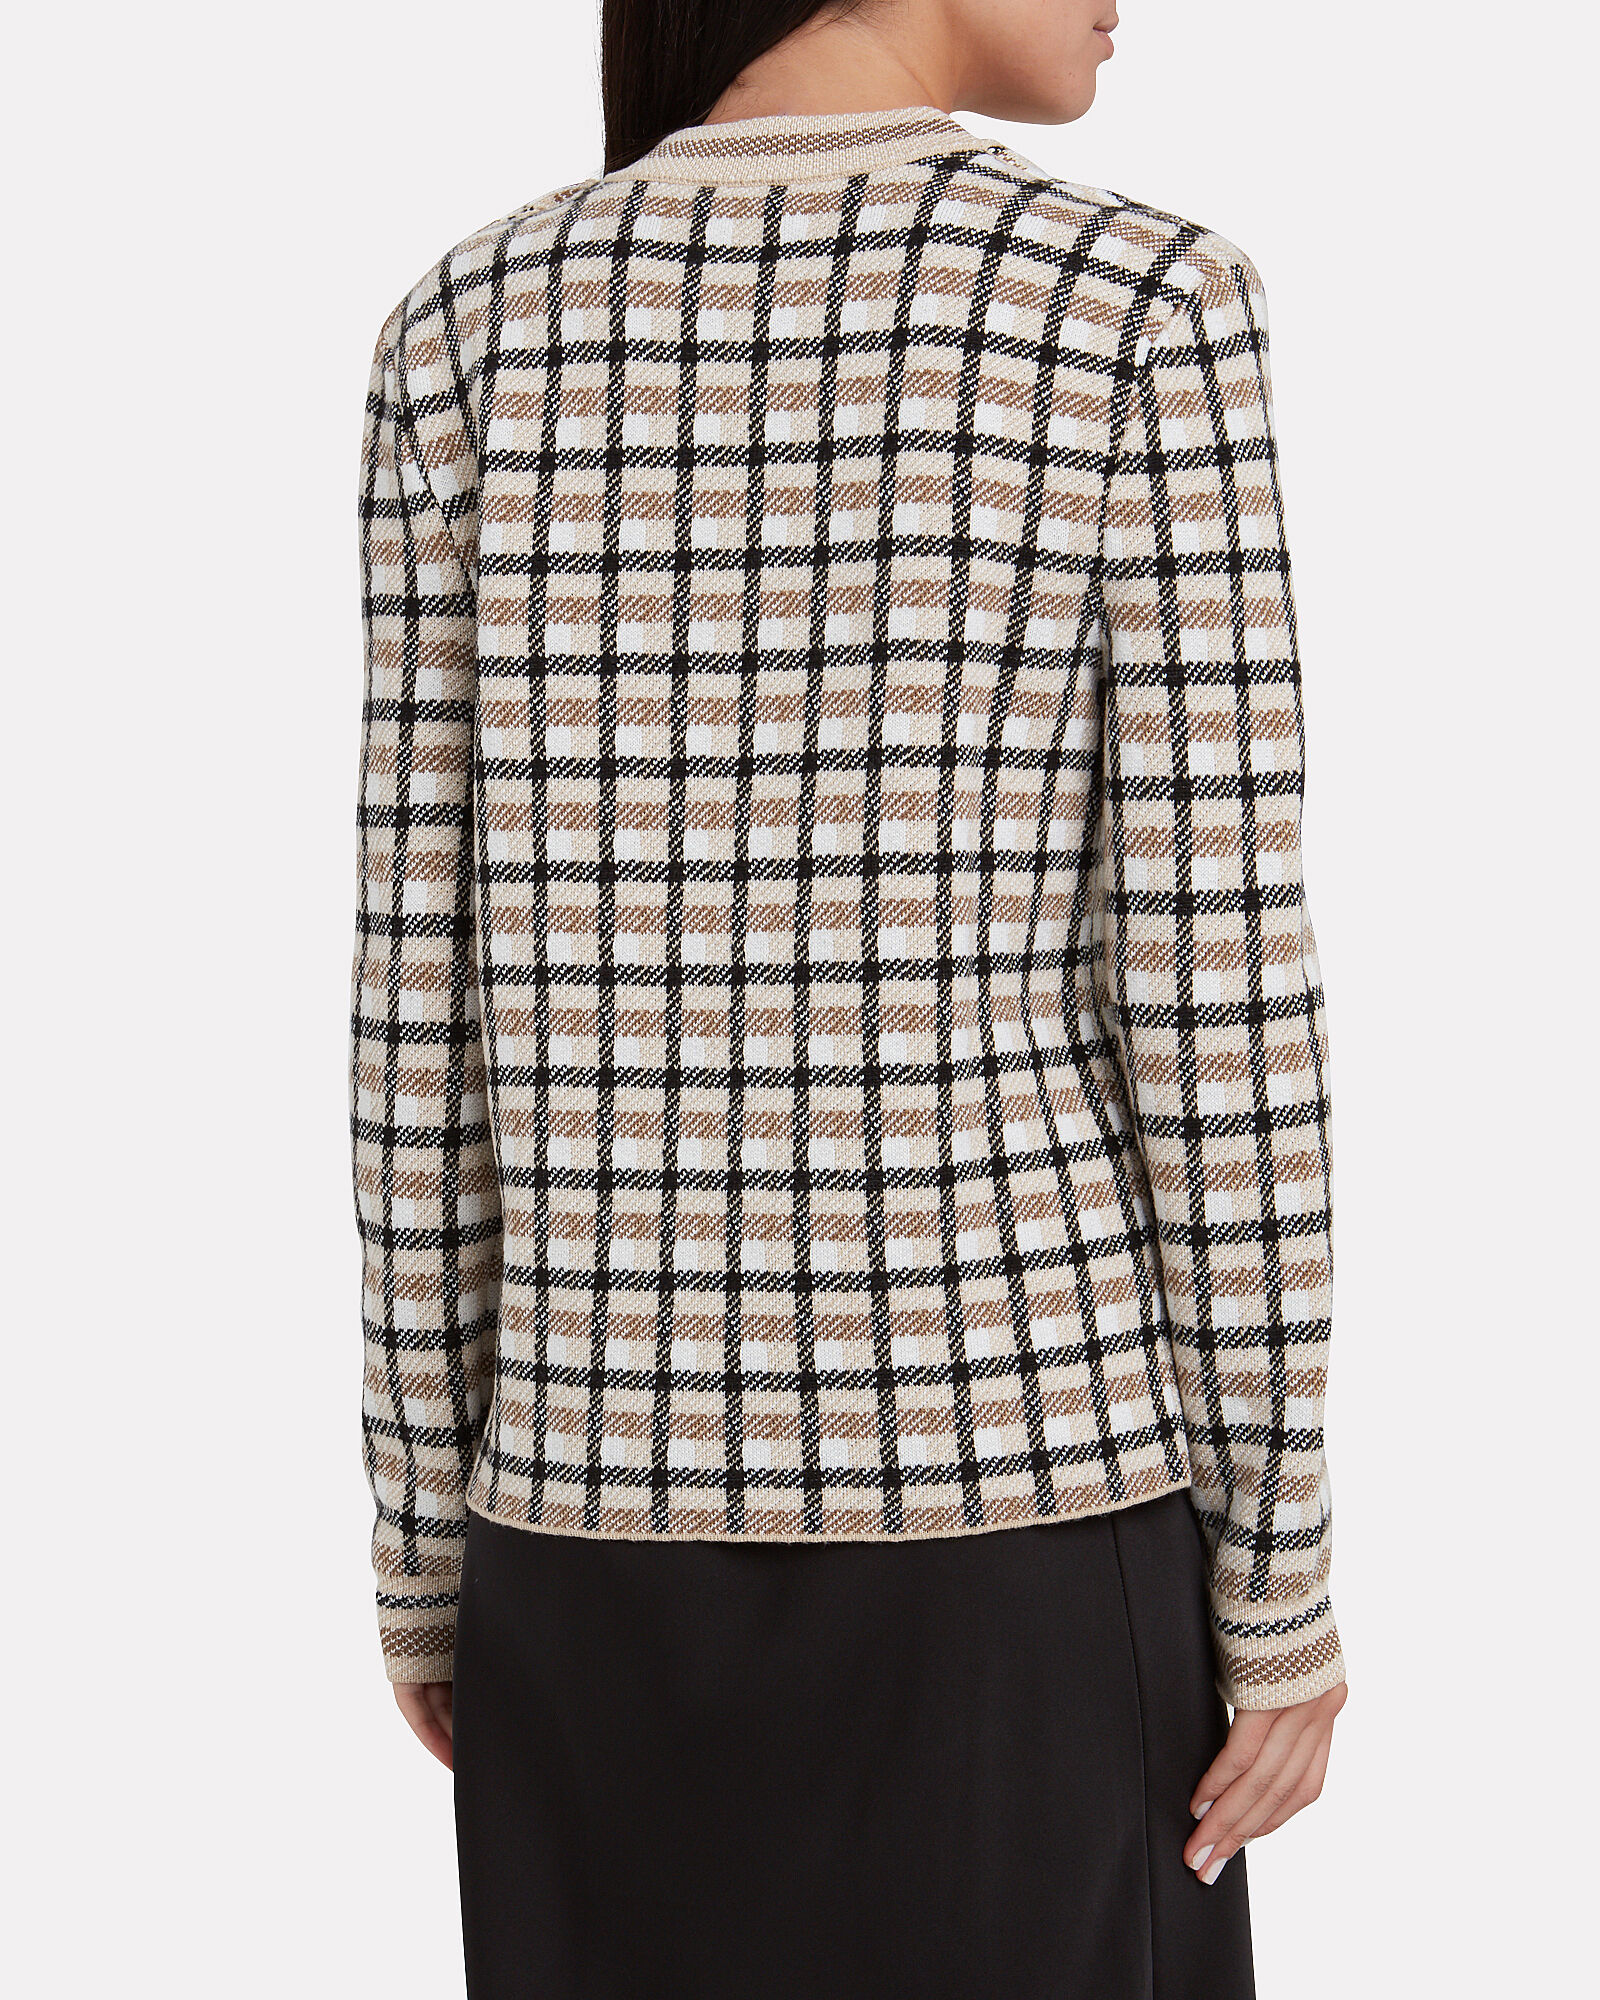 Wool Checked Crewneck Sweater, IVORY/BROWN CHECK, hi-res